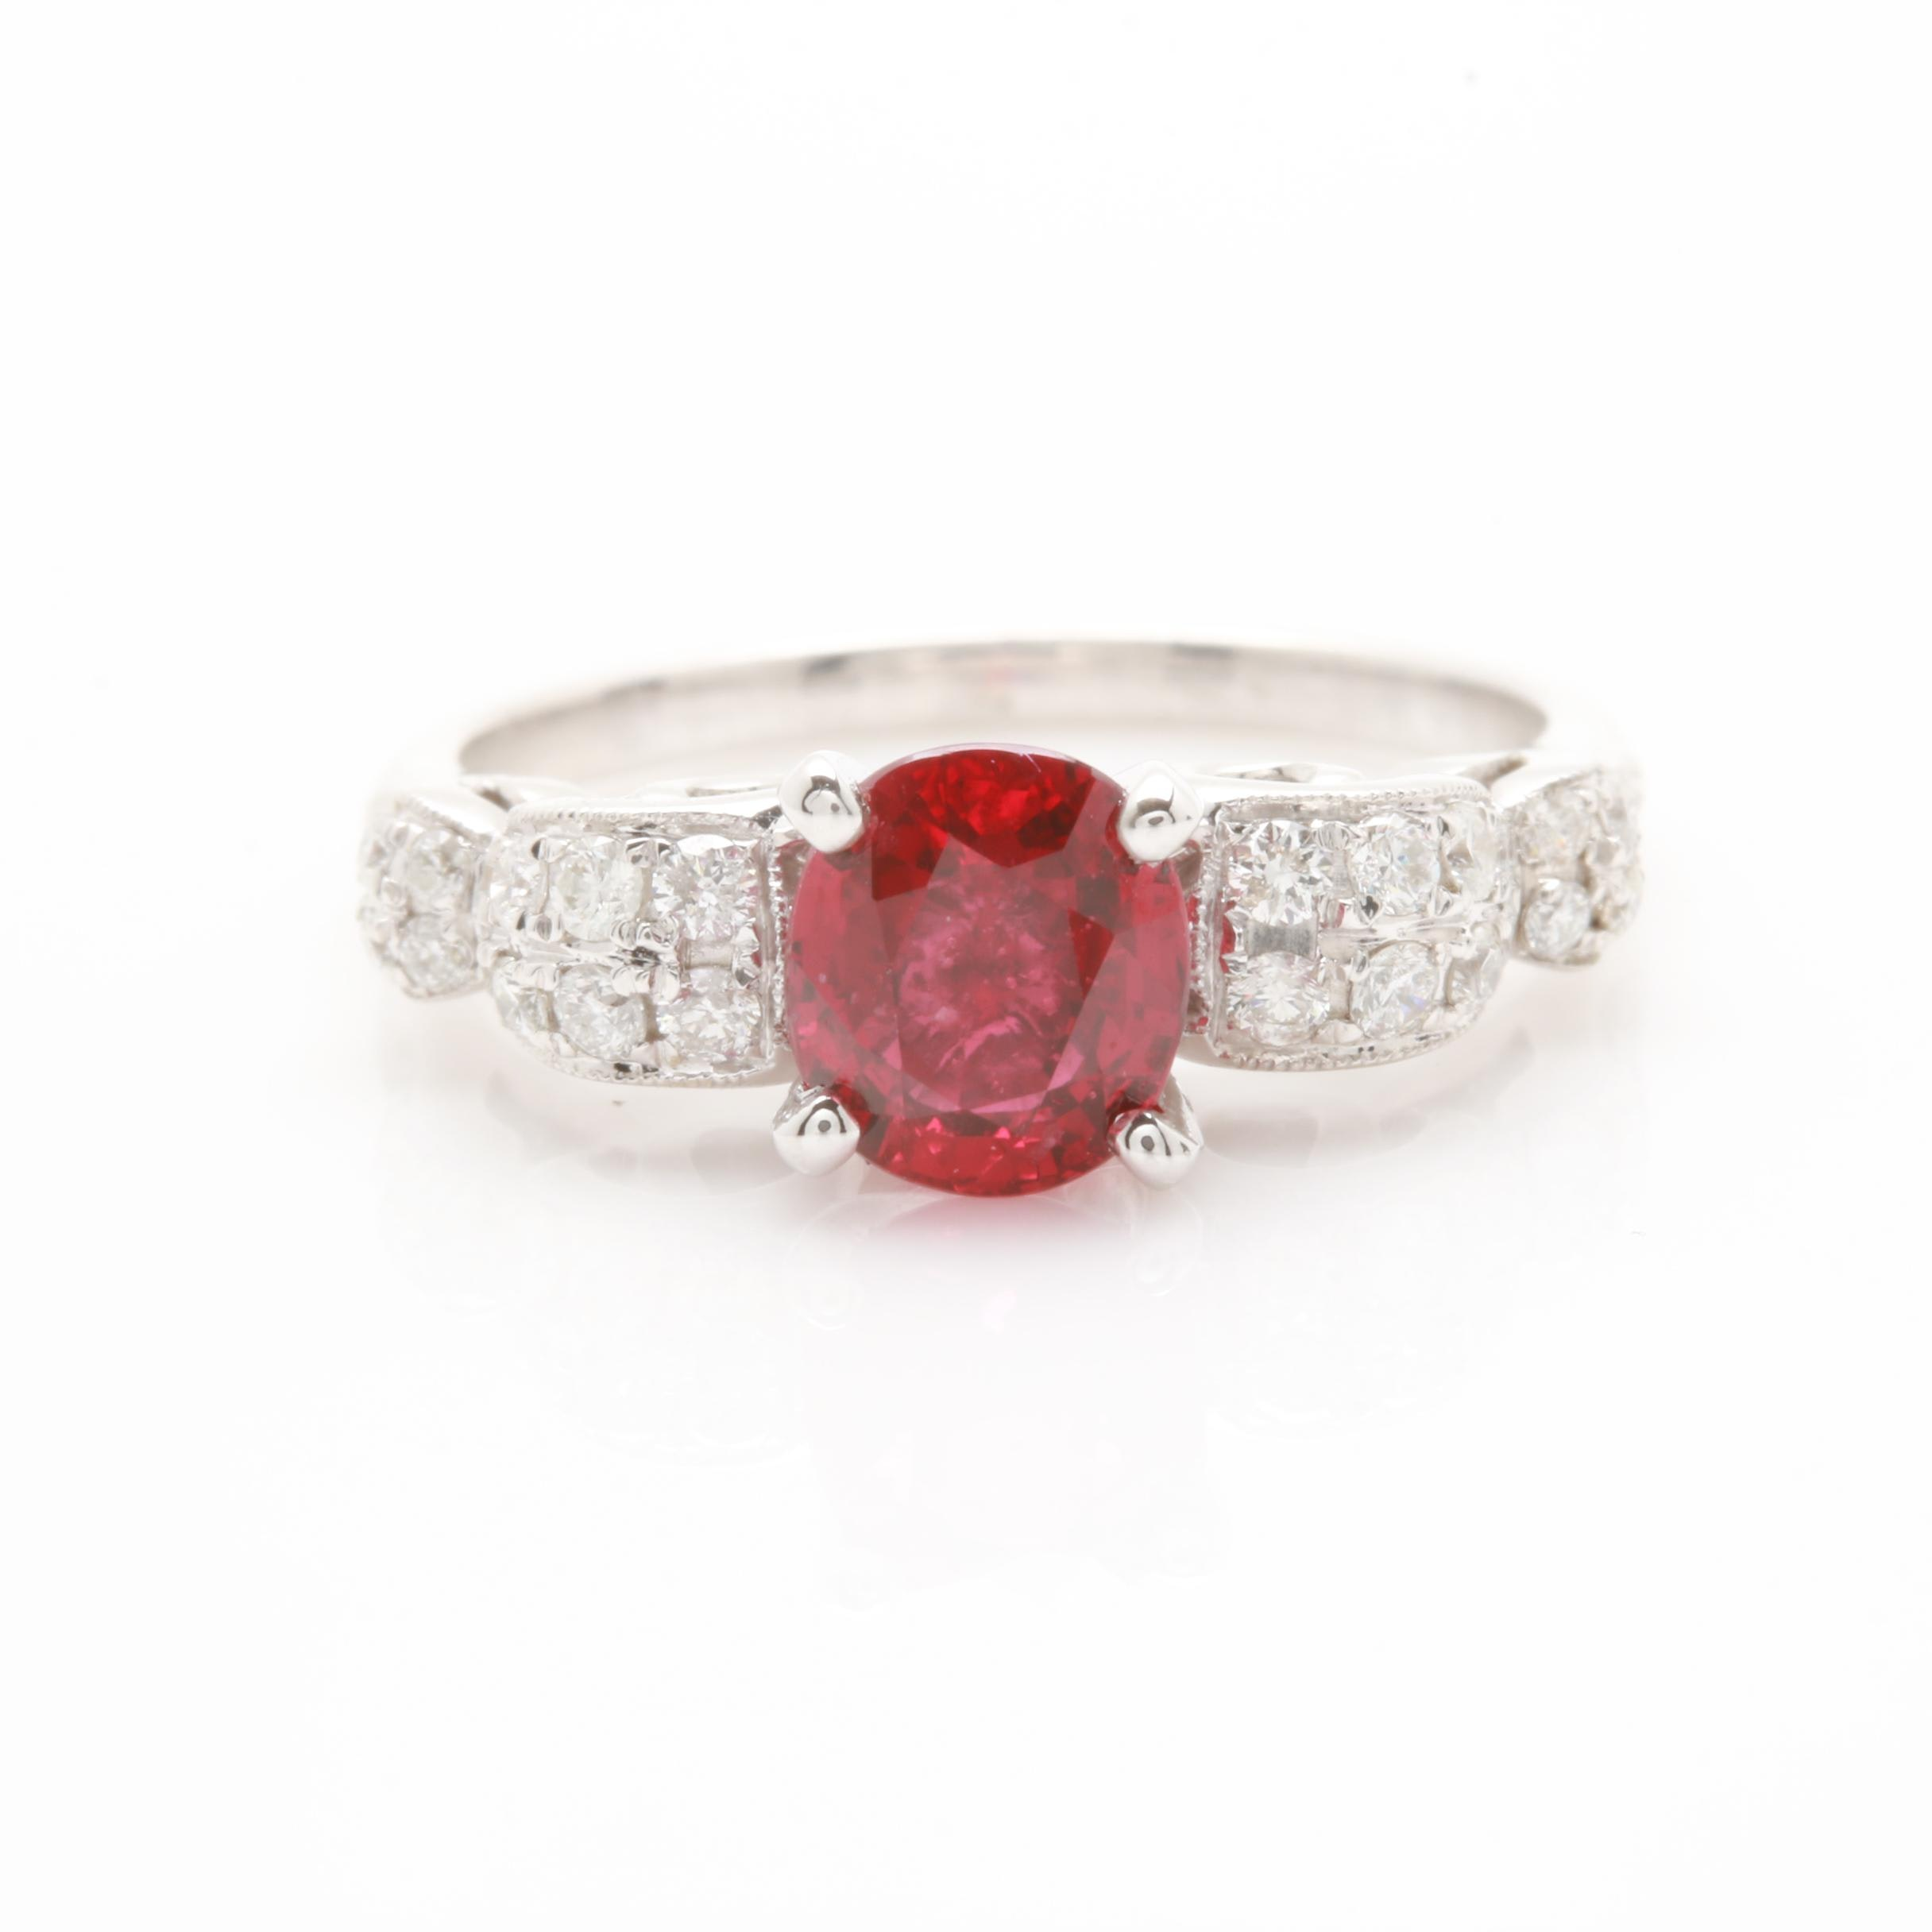 14K White Gold 1.62 CT Ruby and Diamond Ring with GIA Number and Report